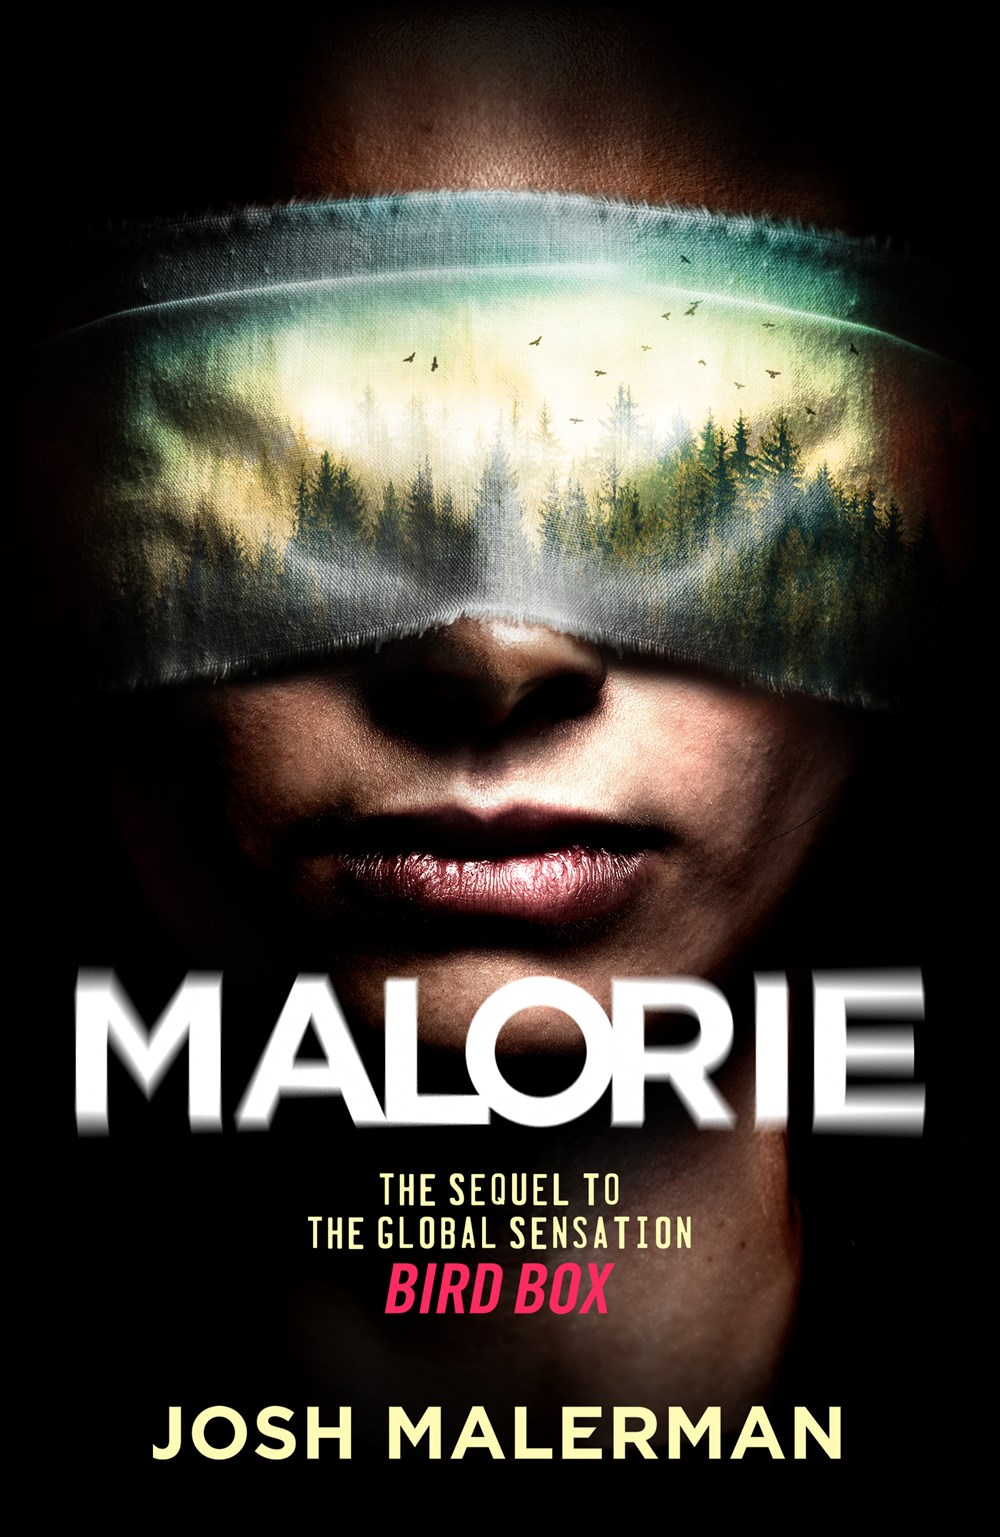 Malorie by Josh Malerman